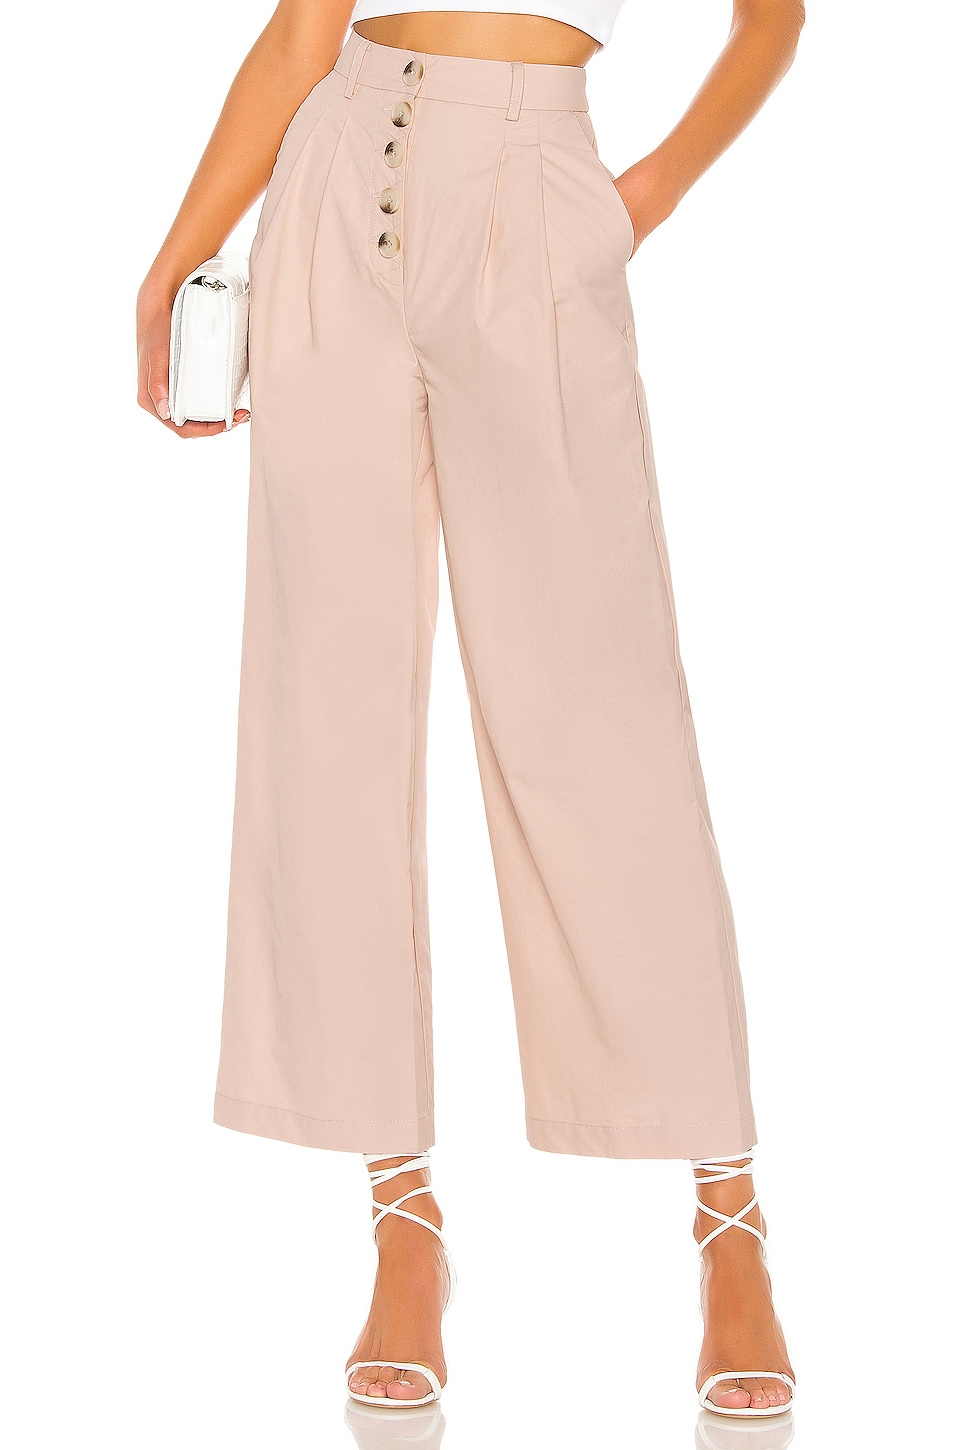 L'Academie The Delphine Pant in Blush